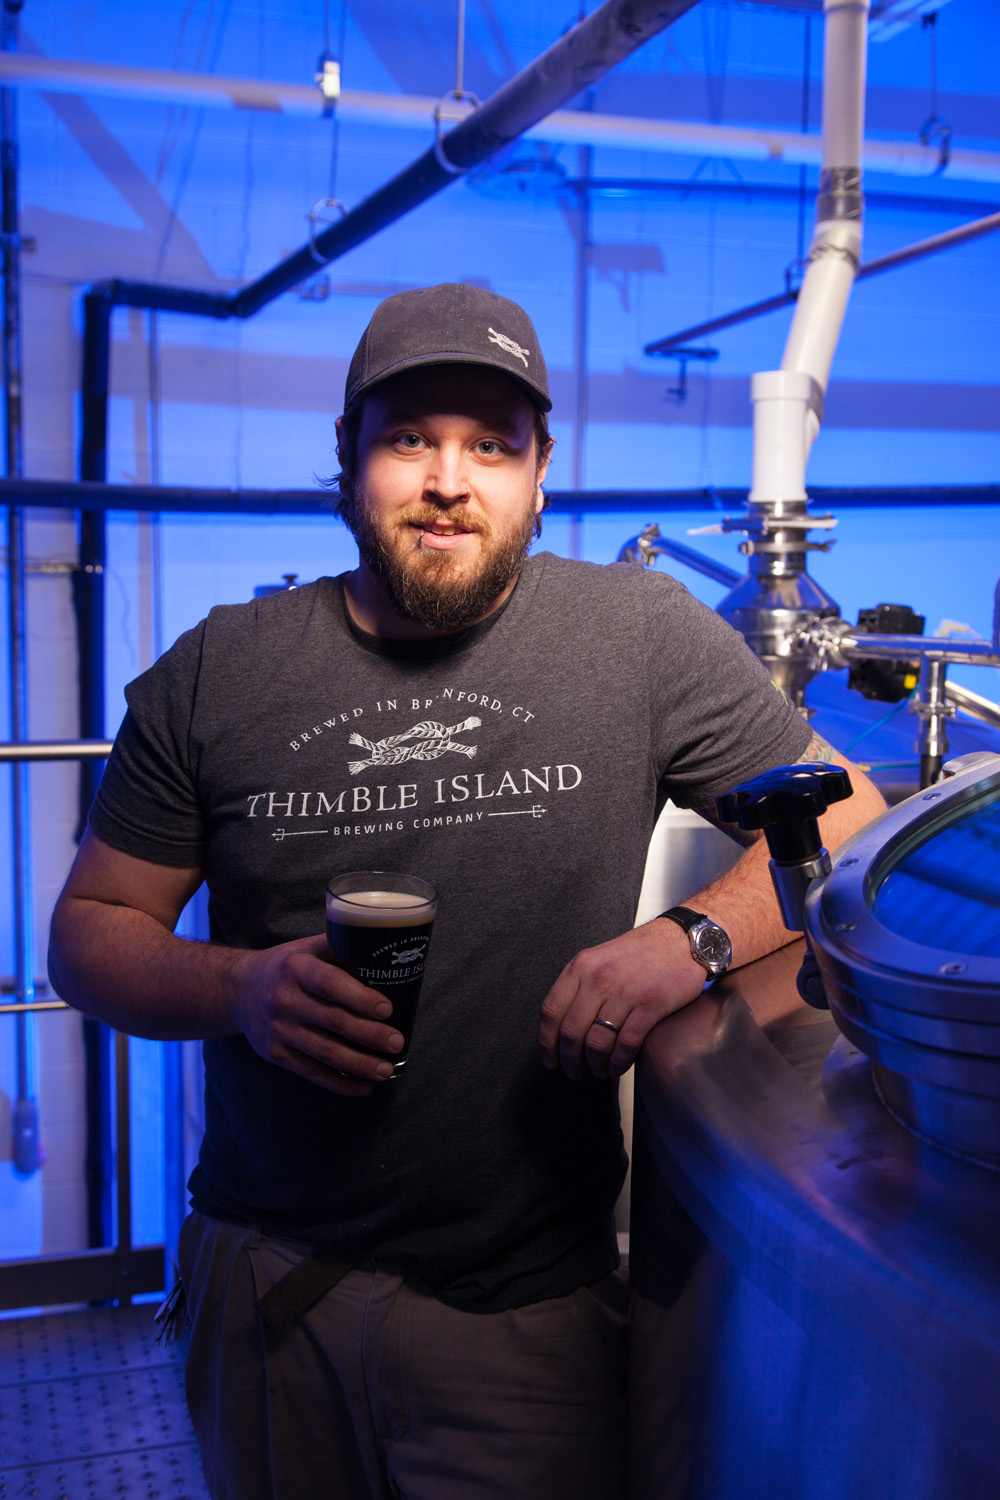 Dan Carr, Brewer at Thimble Island Brewing Co. Branford, CT Established in 2010